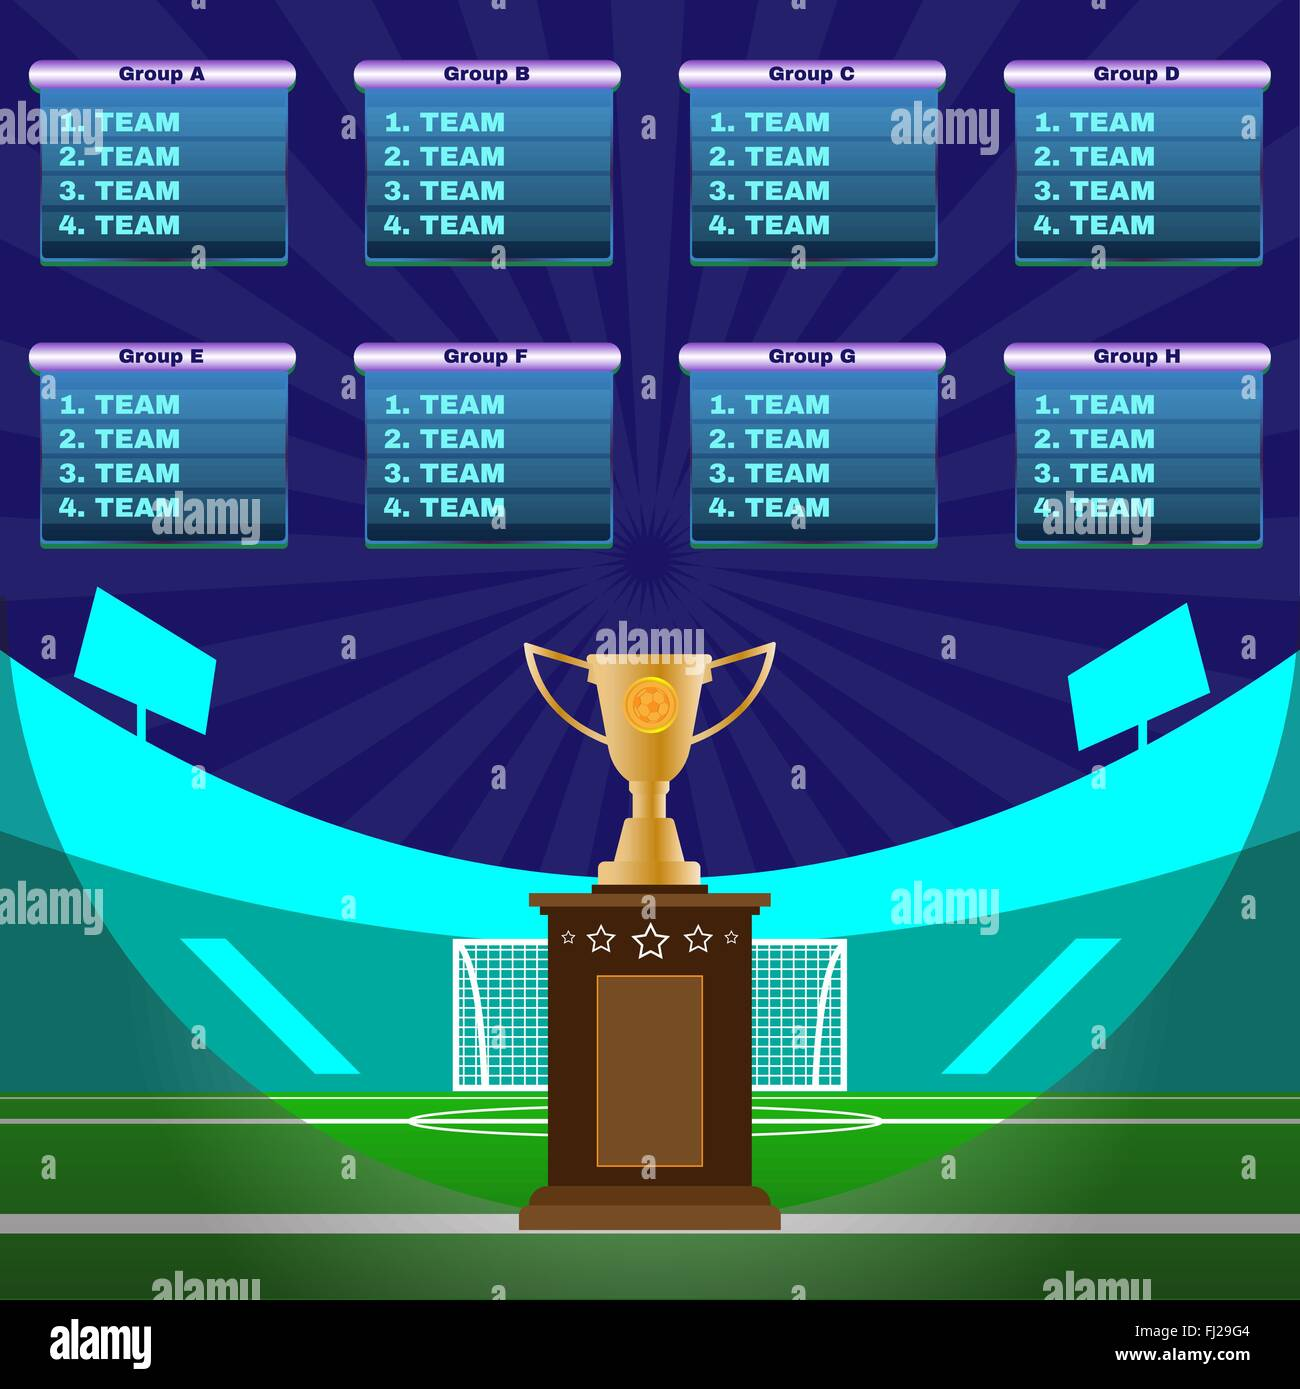 Soccer Champions Scoreboard Template on Dark Backdrop Sports – Scoreboard Template